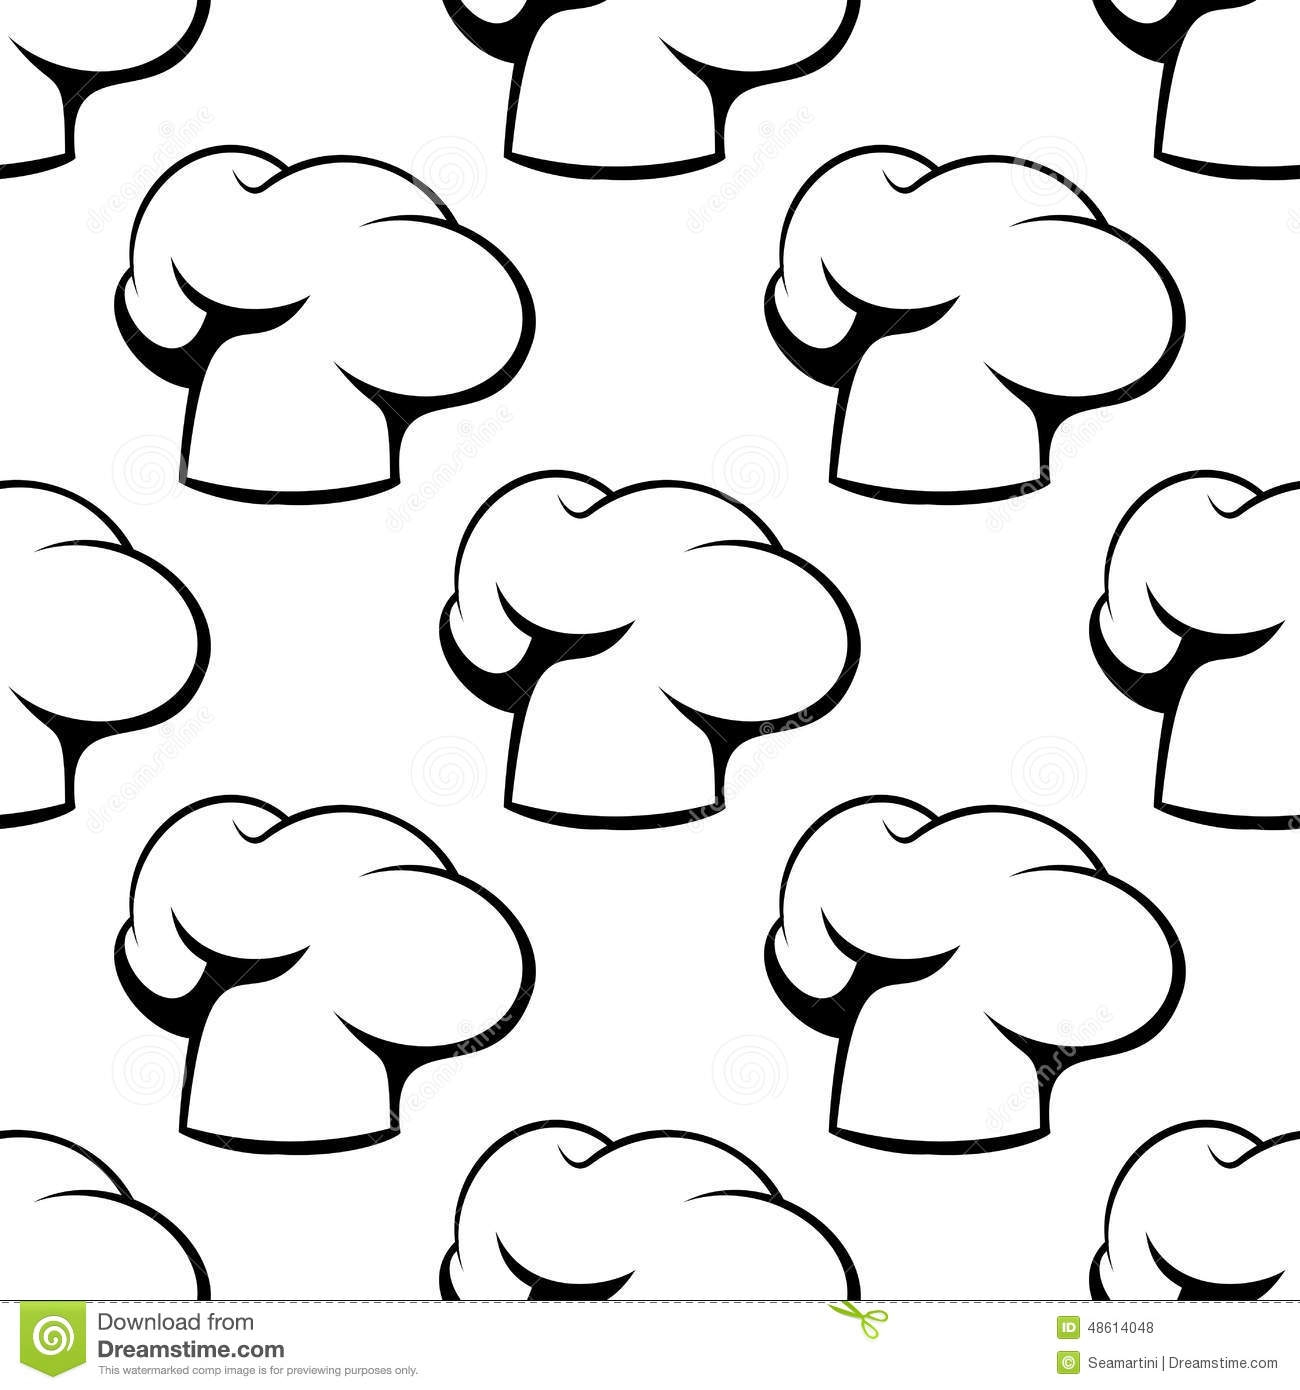 876119b7022 Chef Toque Outline Seamless Pattern Stock Vector - Illustration of ...